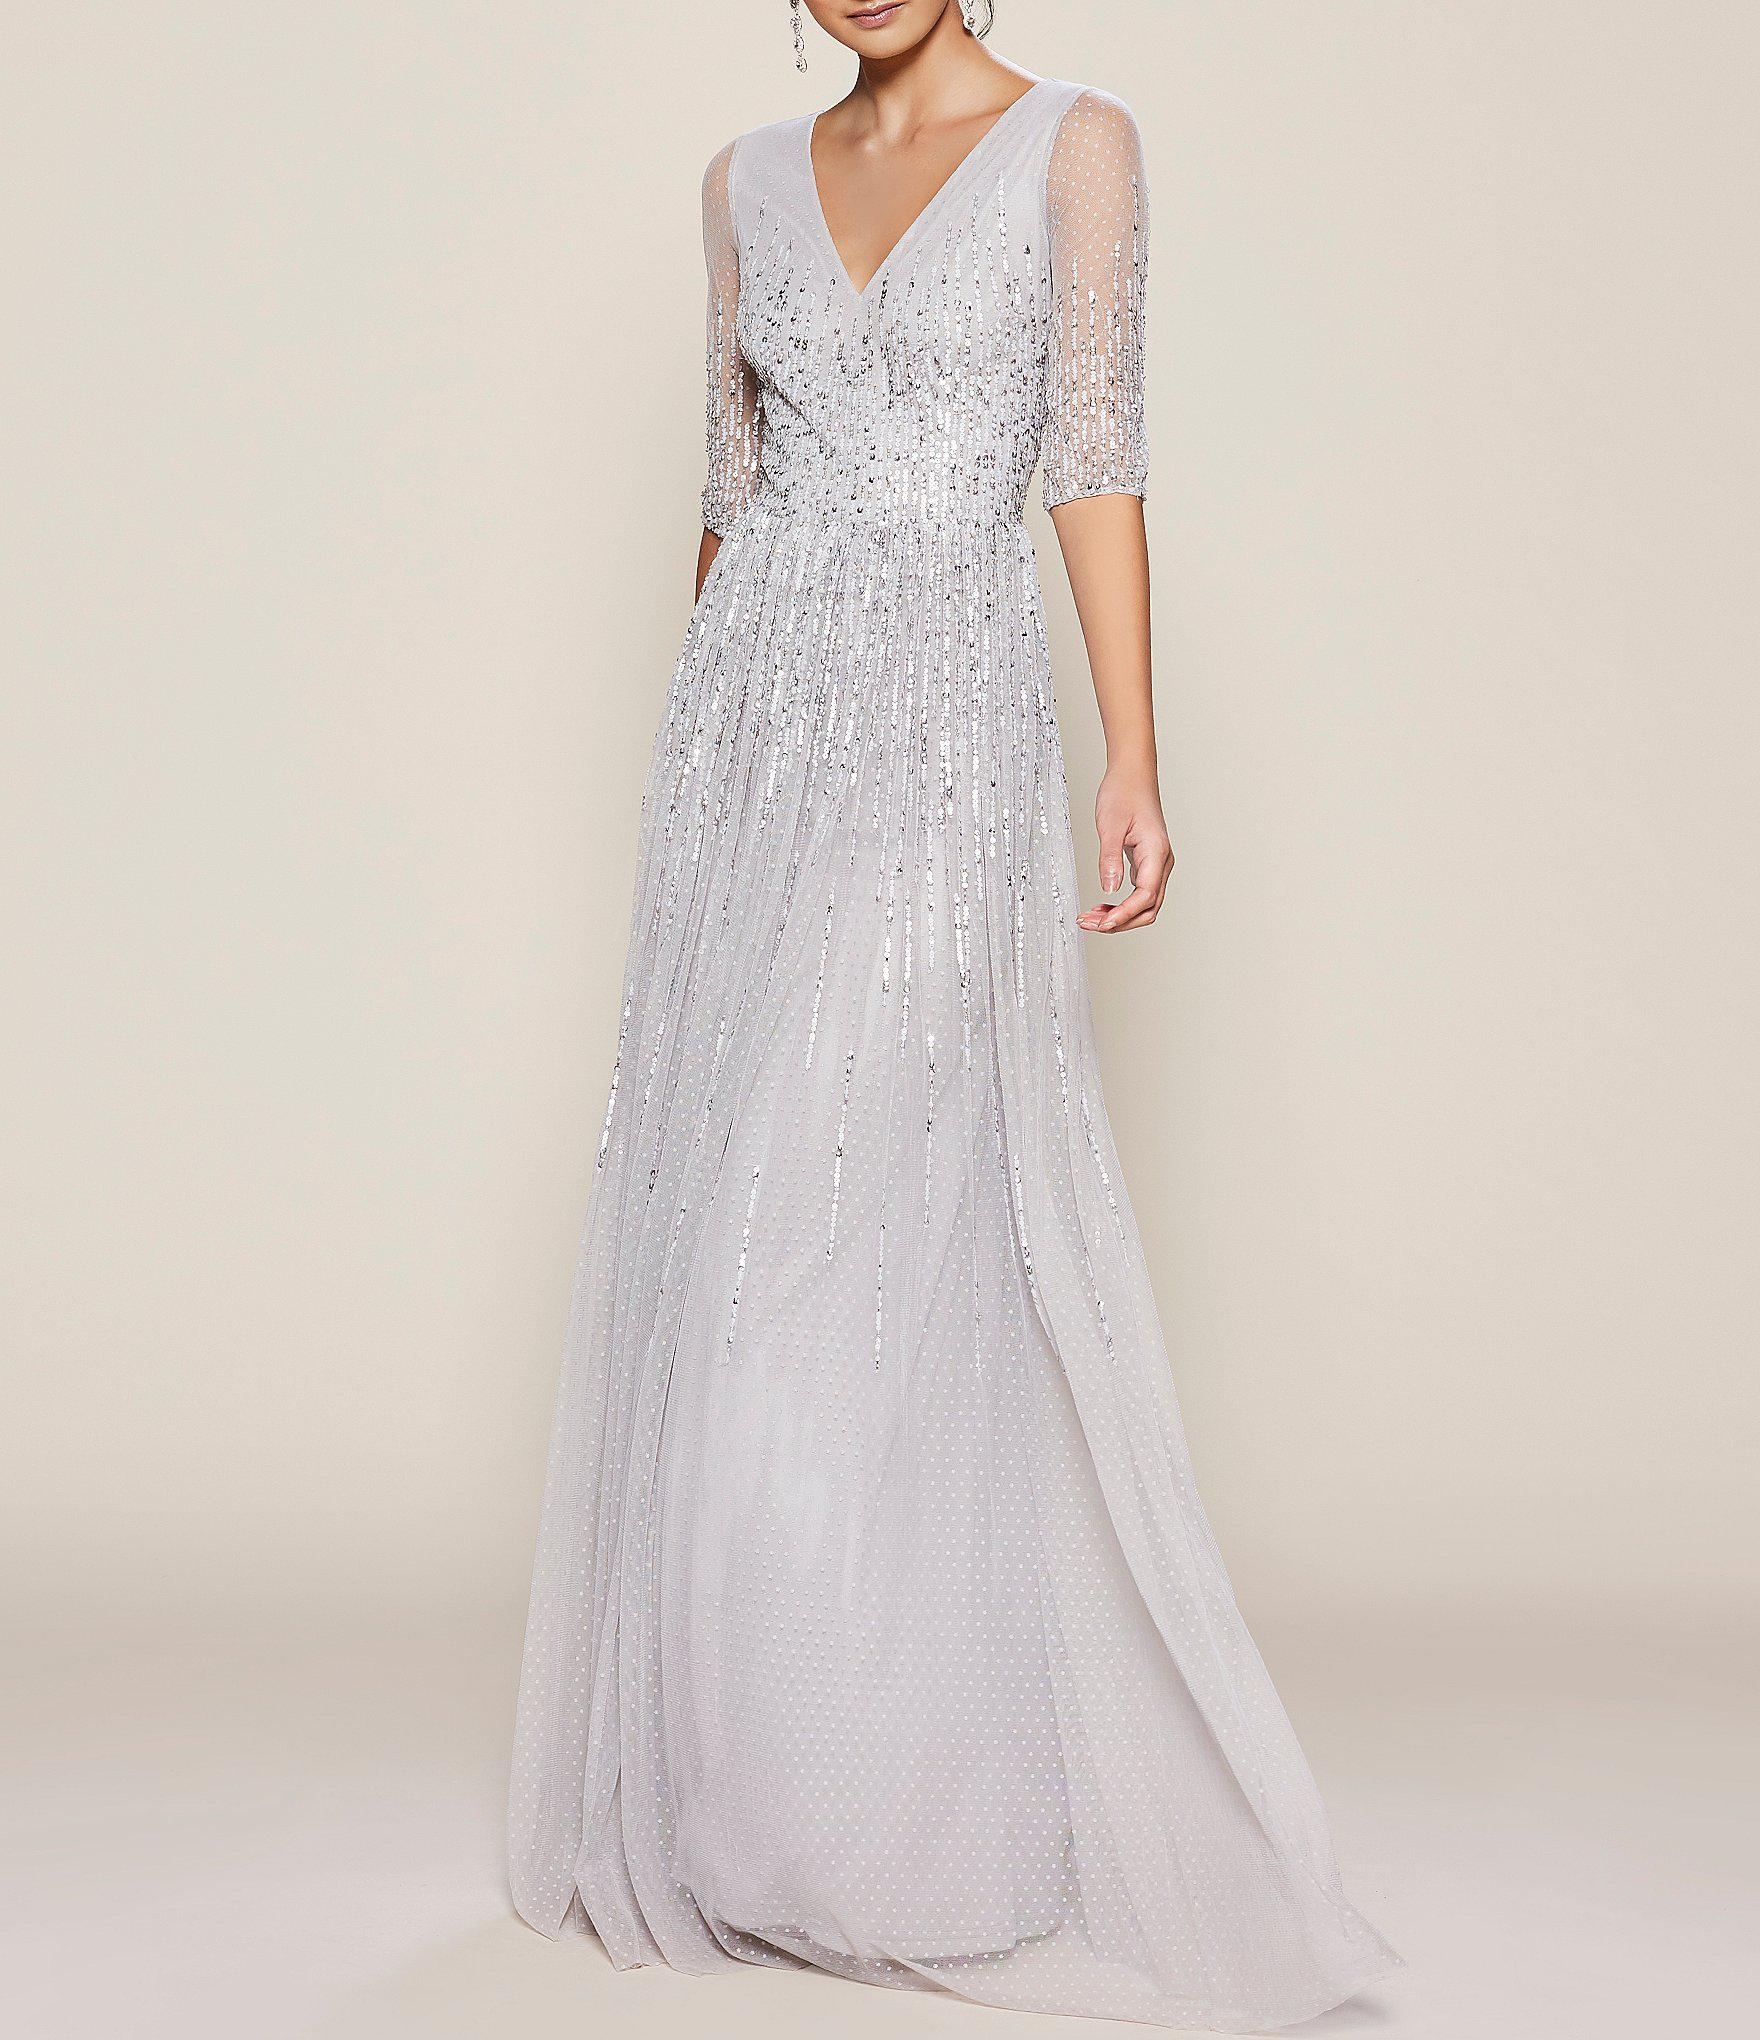 4758fd09a7e8 Adrianna Papell V Neck Sequin Gown in Metallic - Lyst